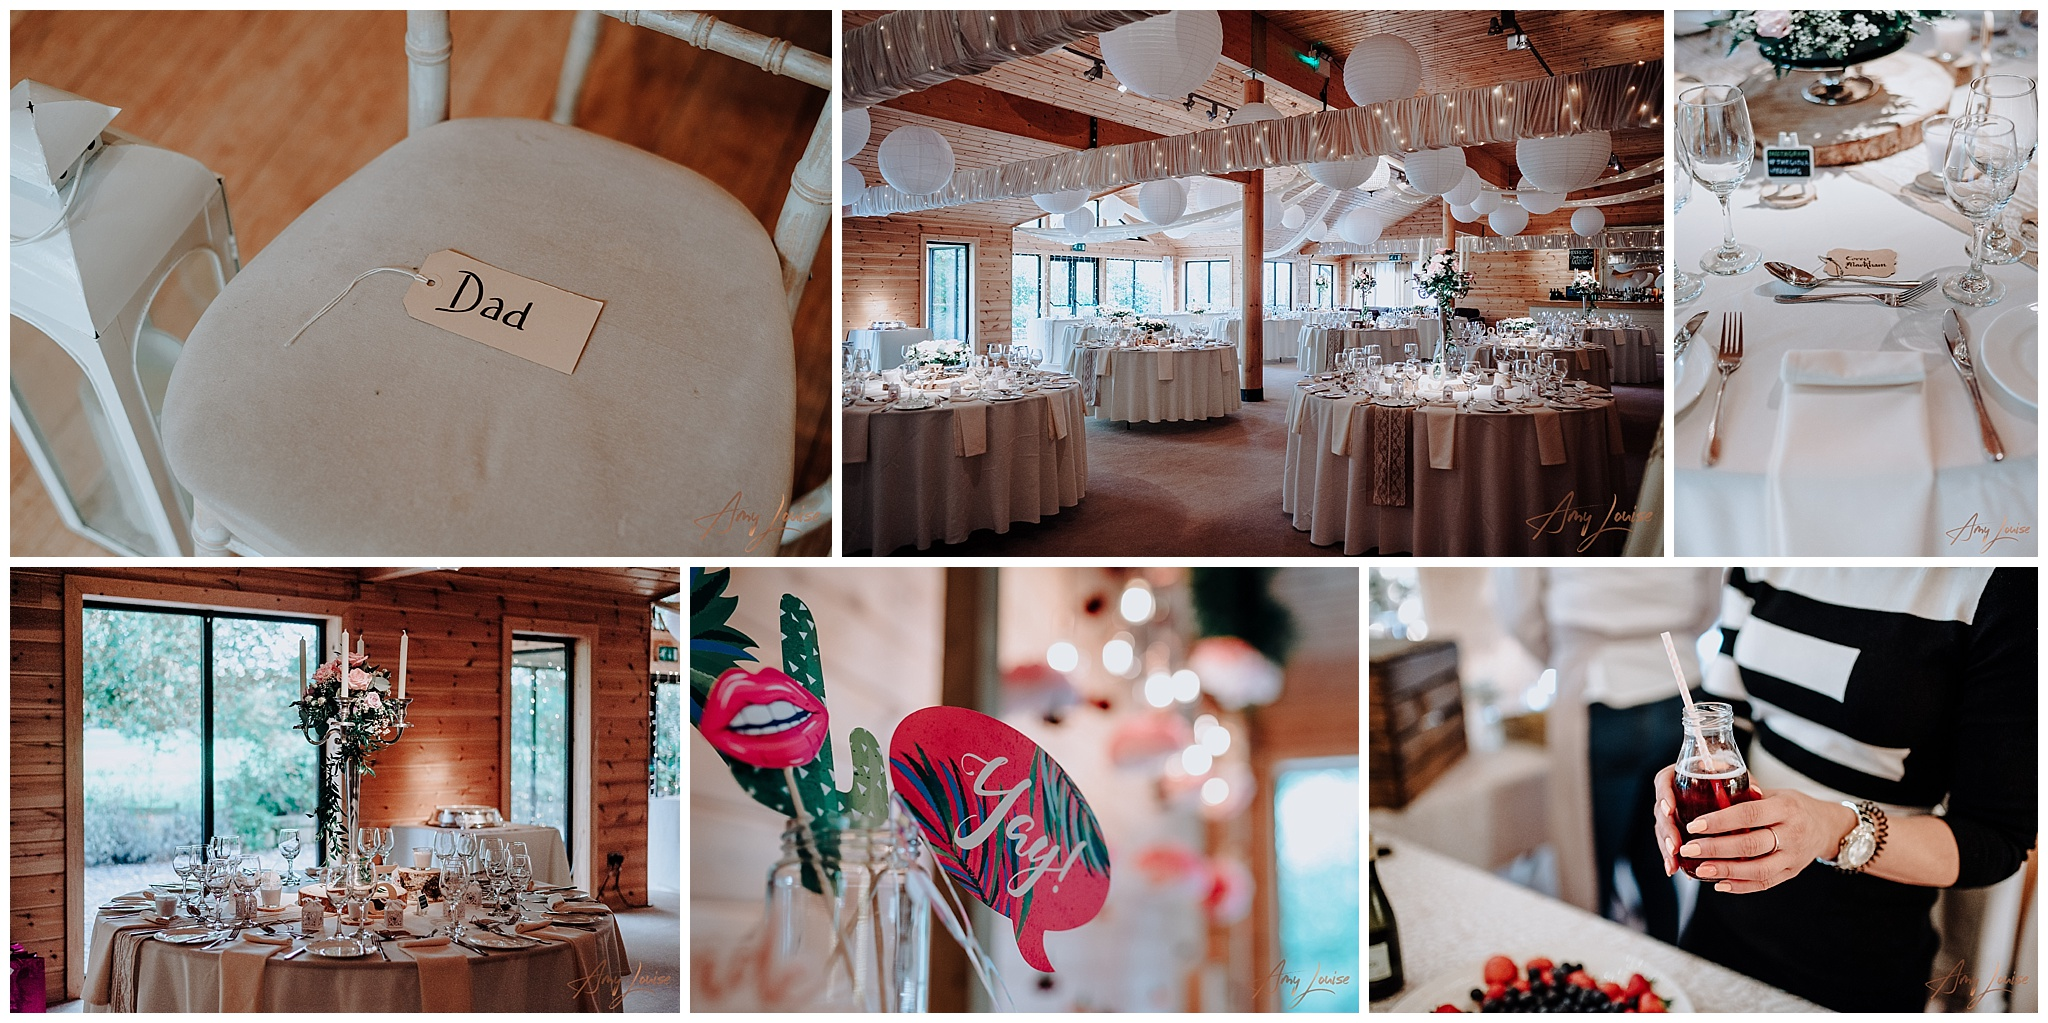 Styal Lodge Wedding Venue details as captured by Amy Louise Photography